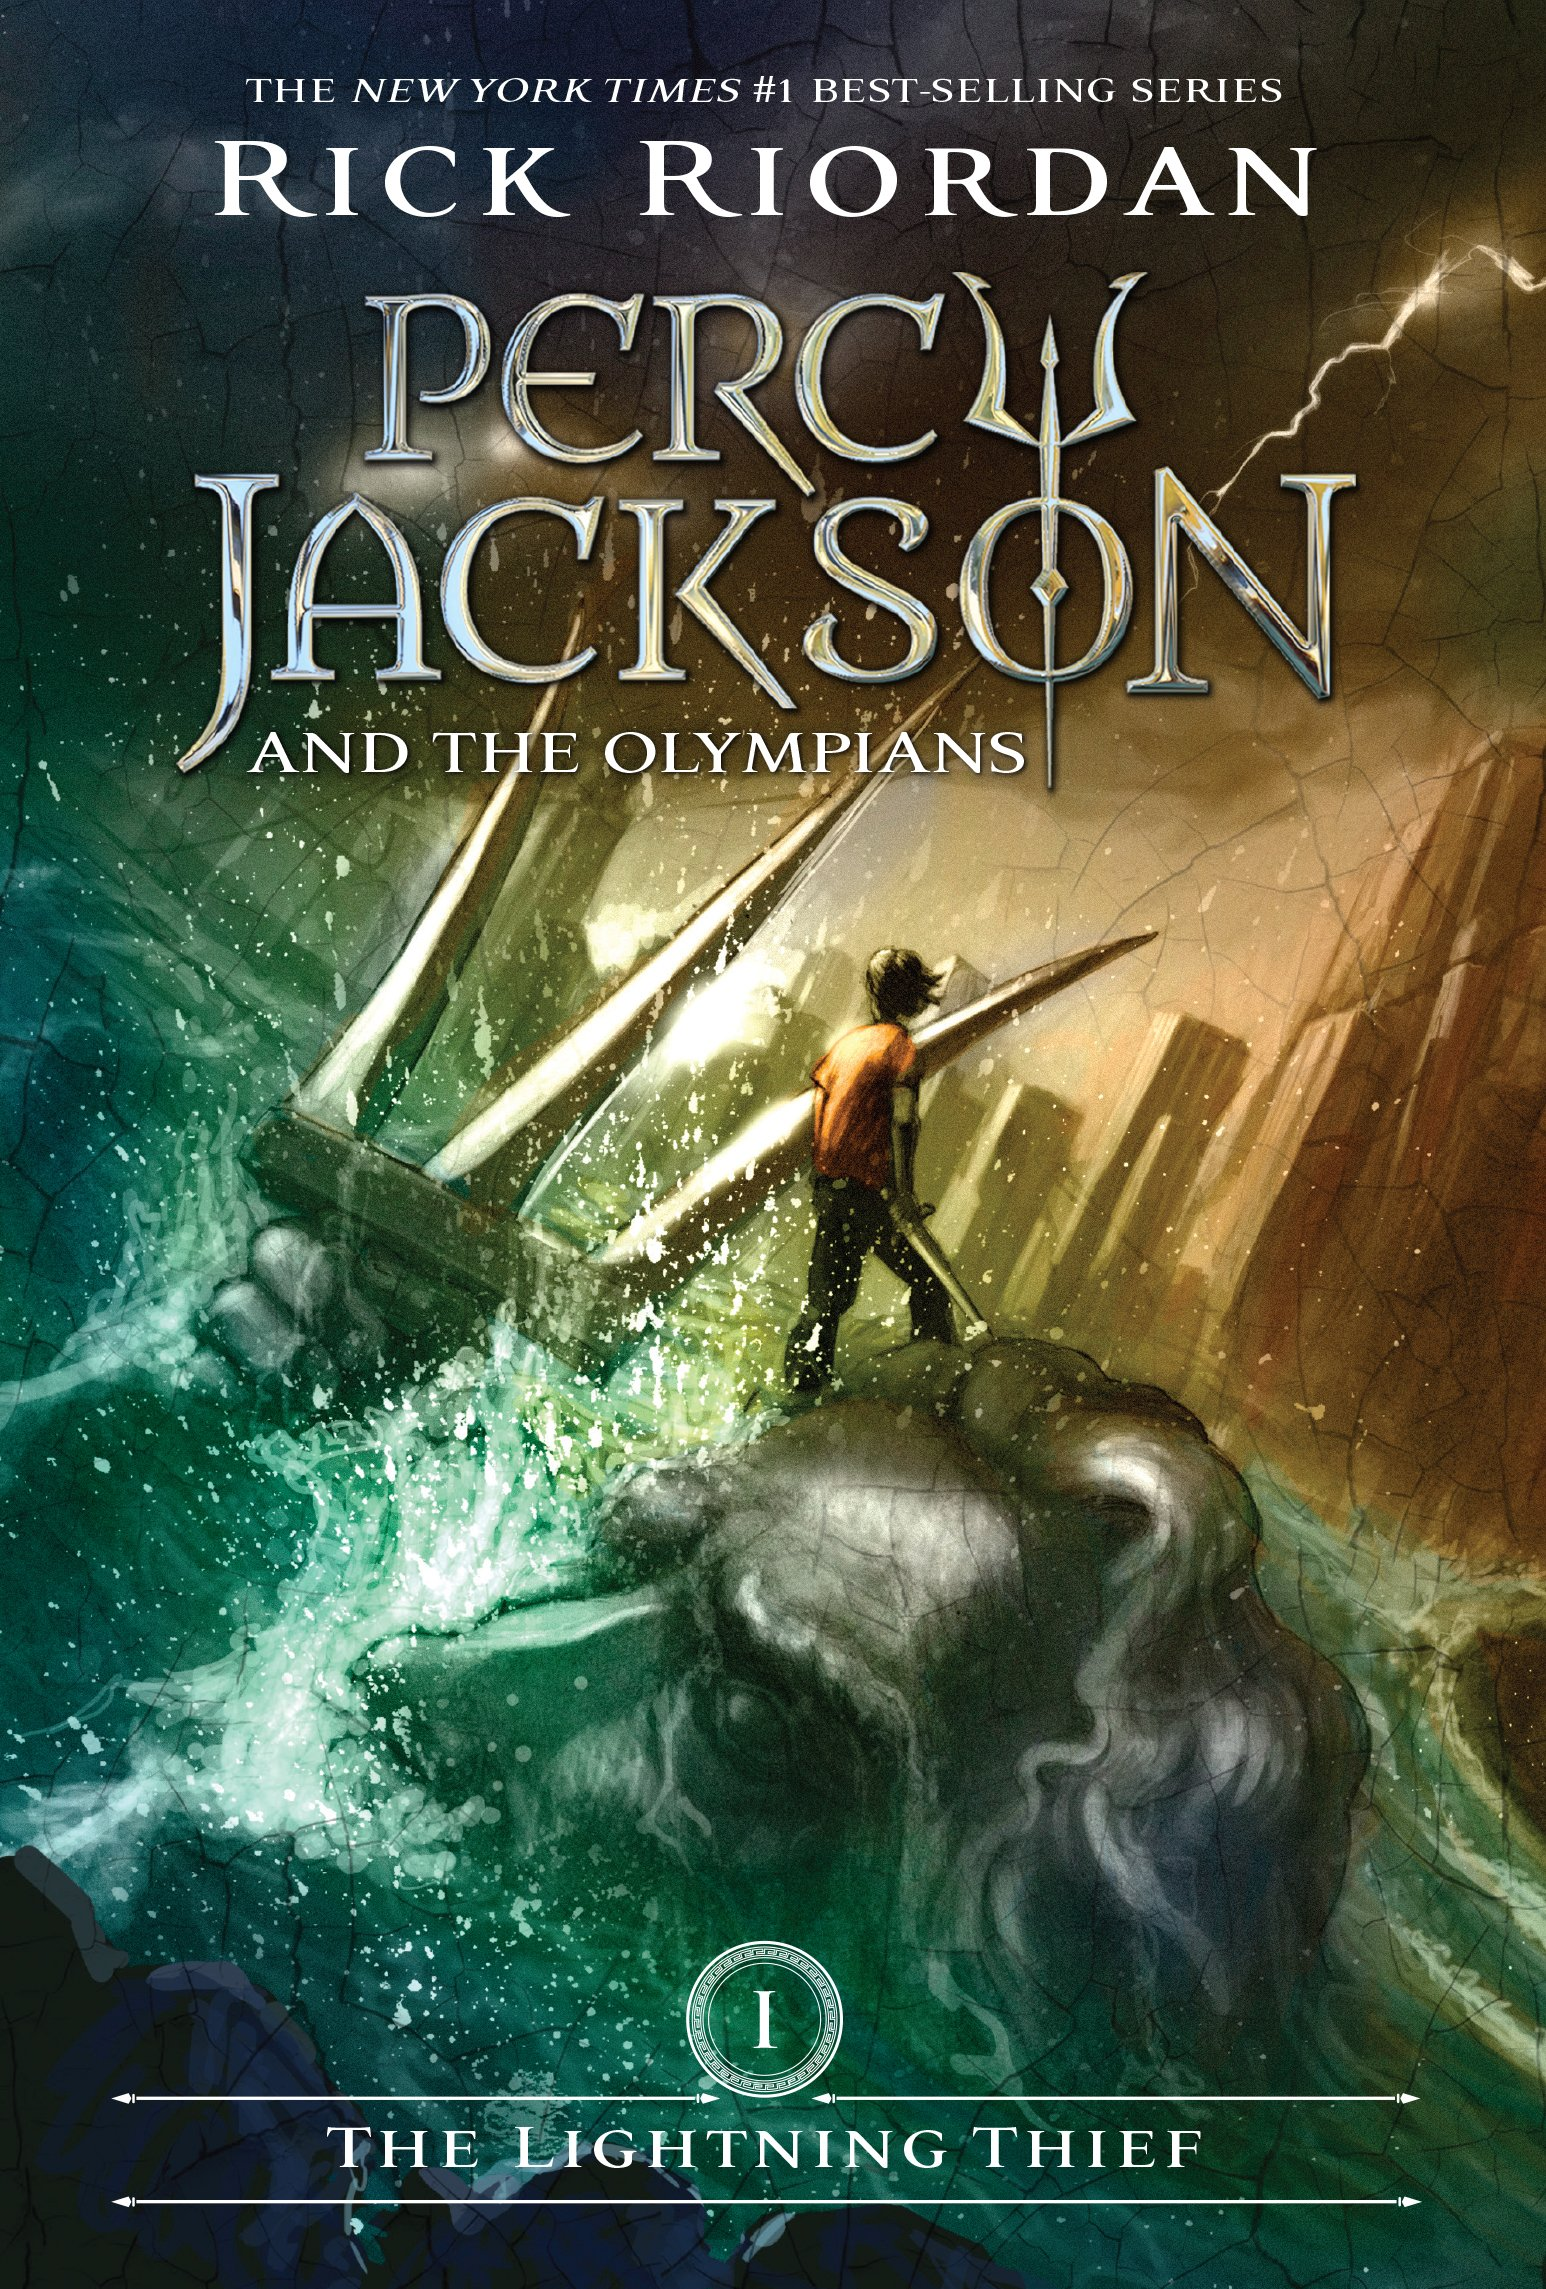 The Lightning Thief (Percy Jackson and the Olympians, Book 1): Riordan, Rick:  9780786838653: Amazon.com: Books